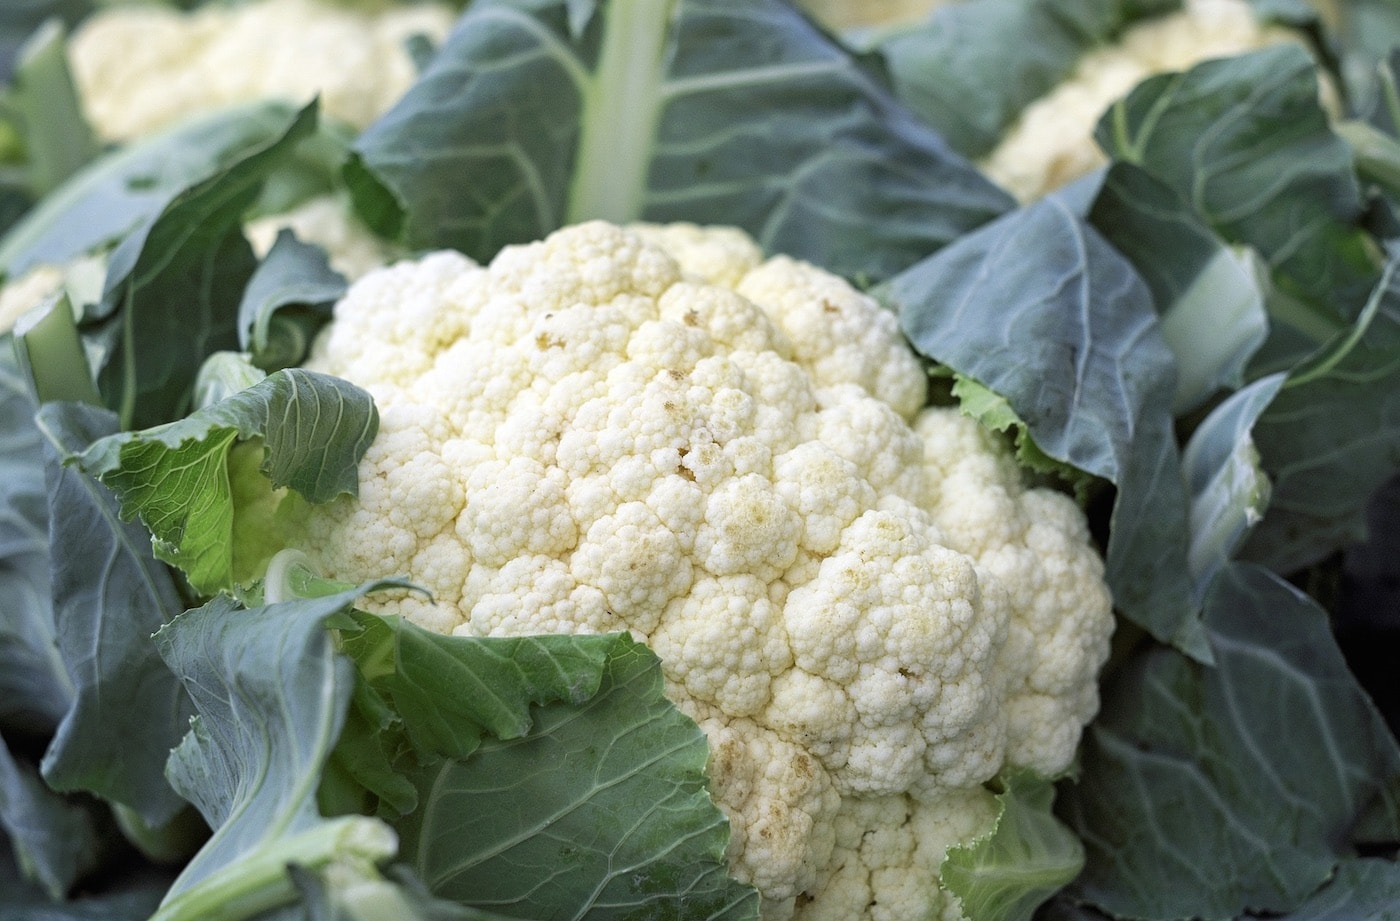 Best cauliflower recipe: how to cook sweet and sour cauliflower